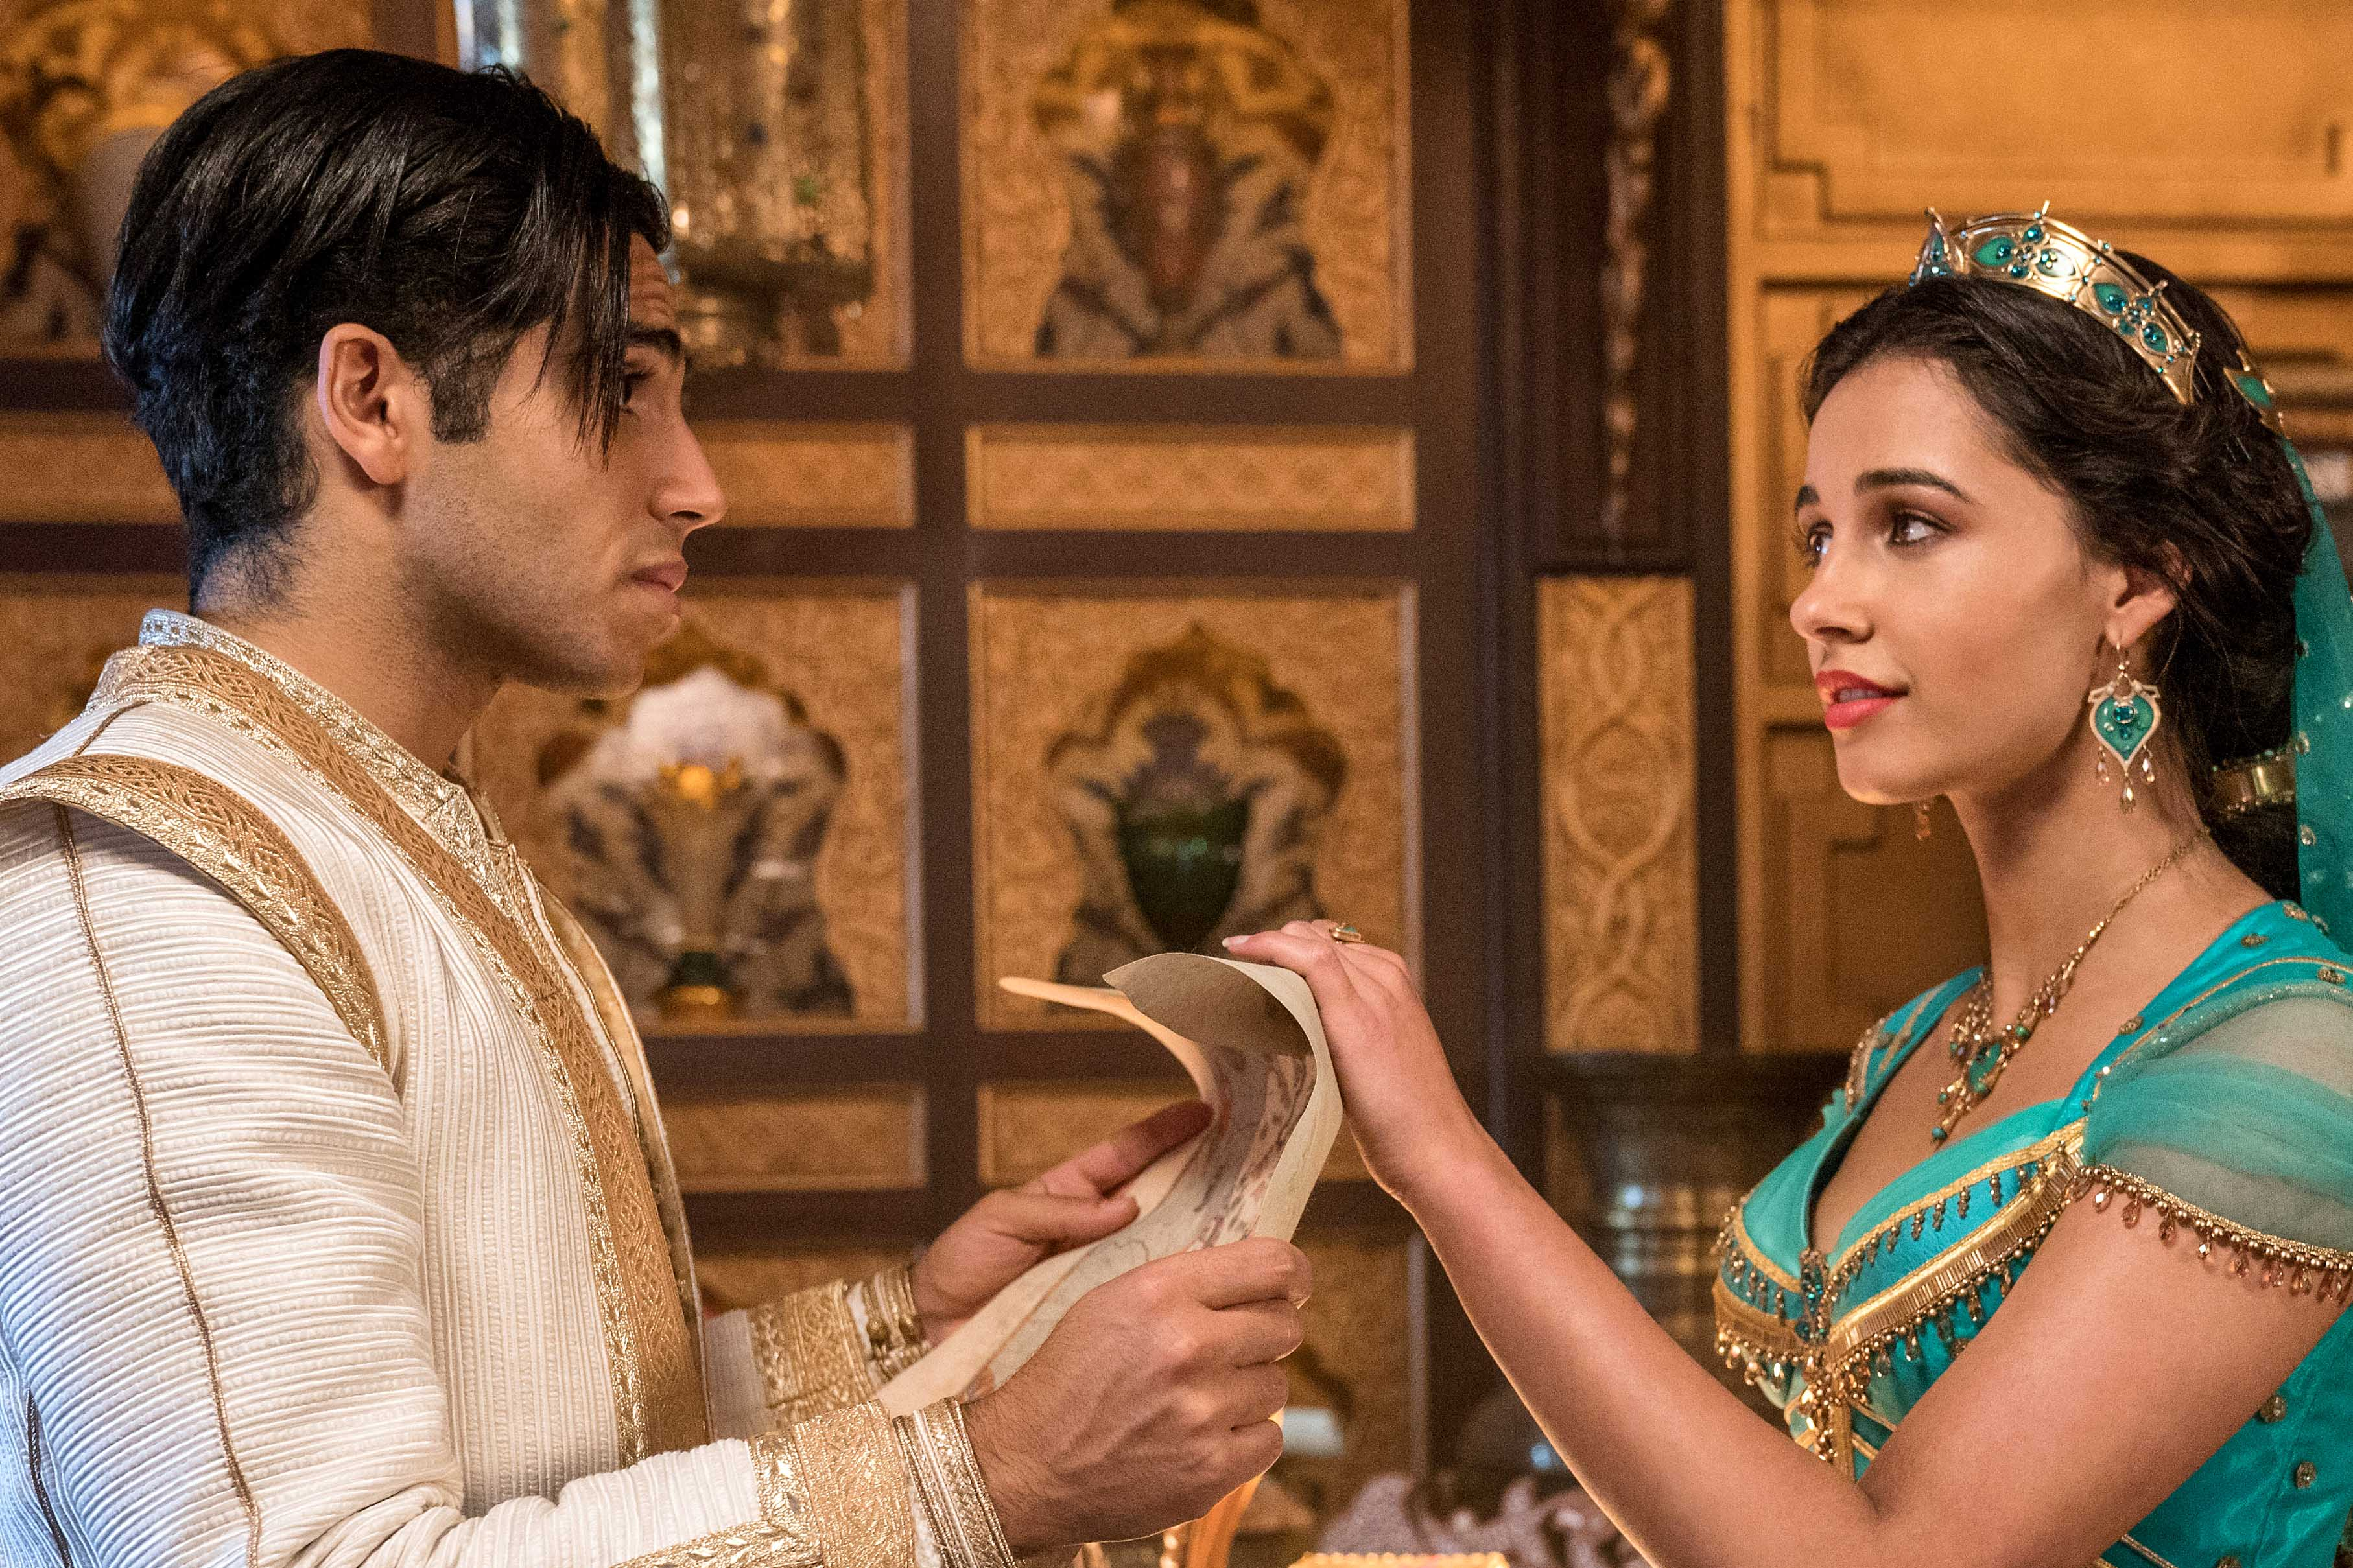 Mena Massoud and Naomi Scott star in a scene from the movie